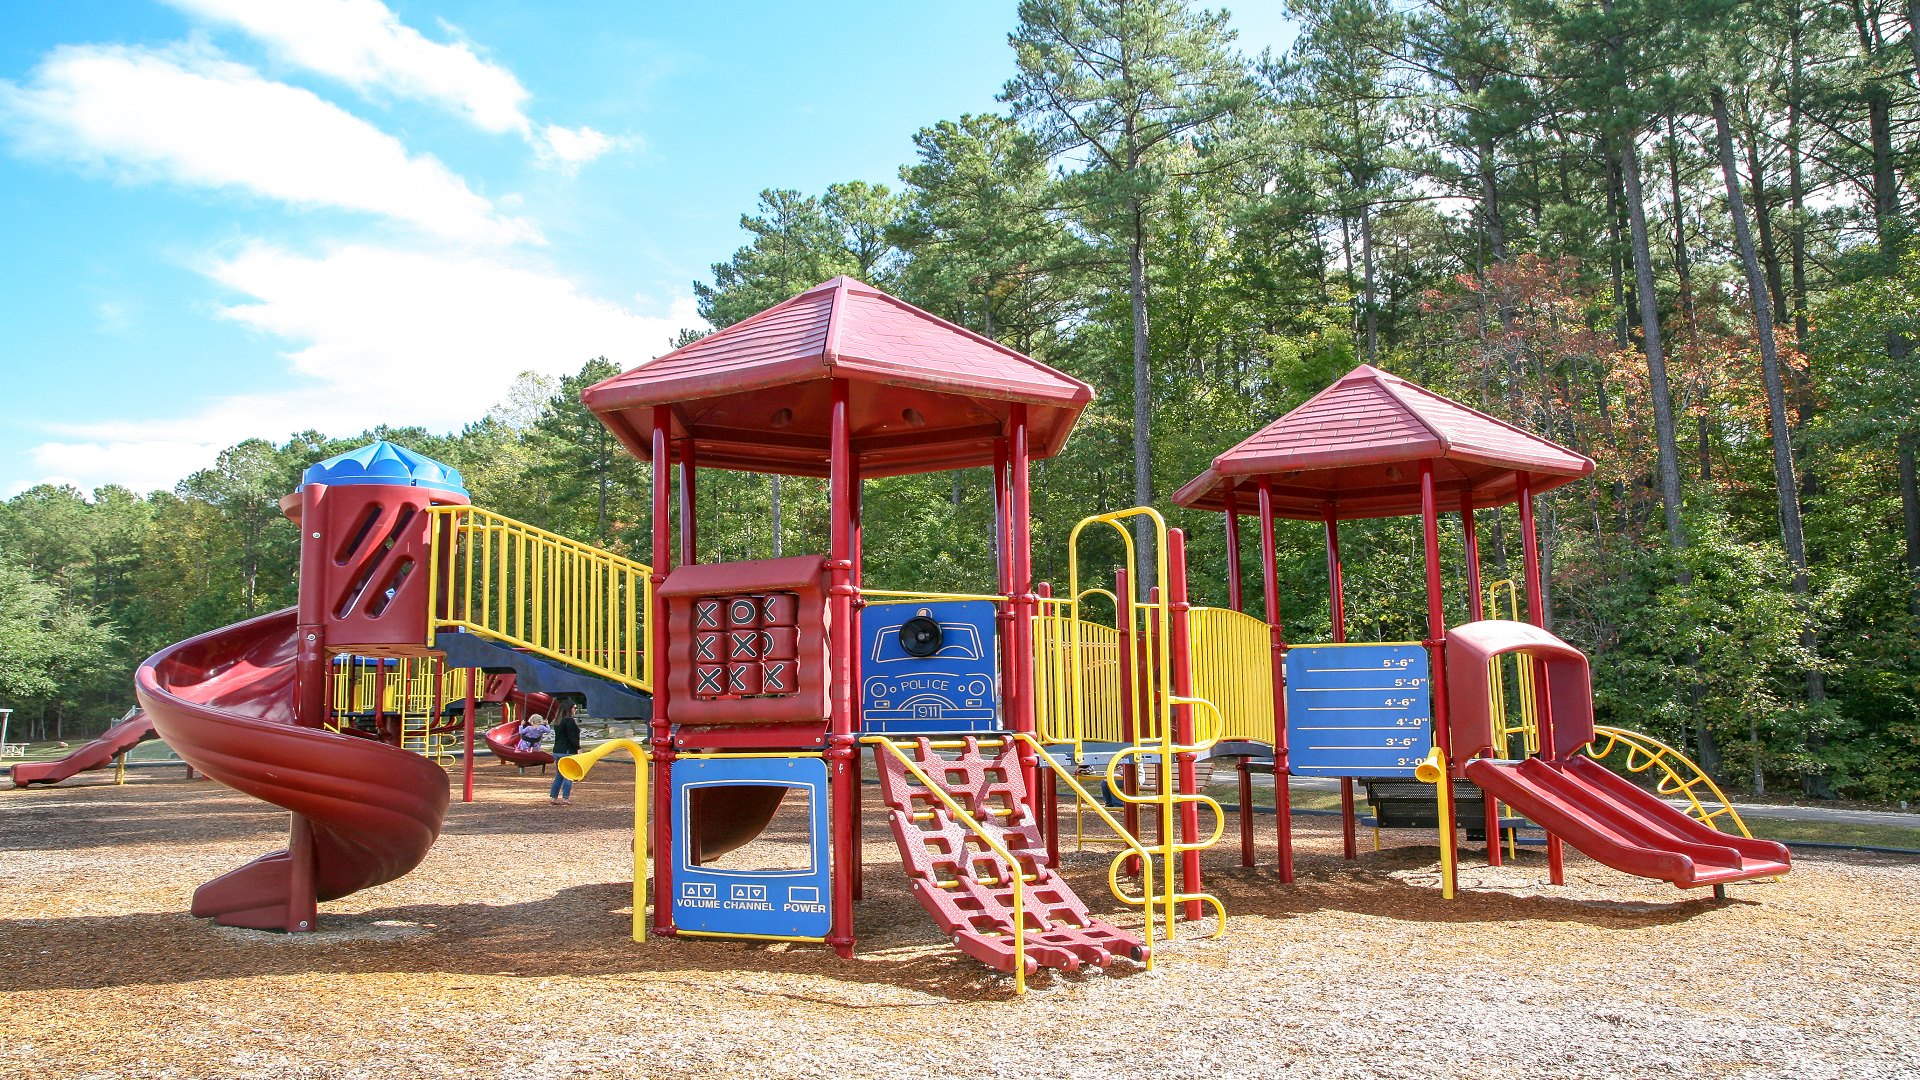 Playground for ages 2 to 5 at Honeycutt Park